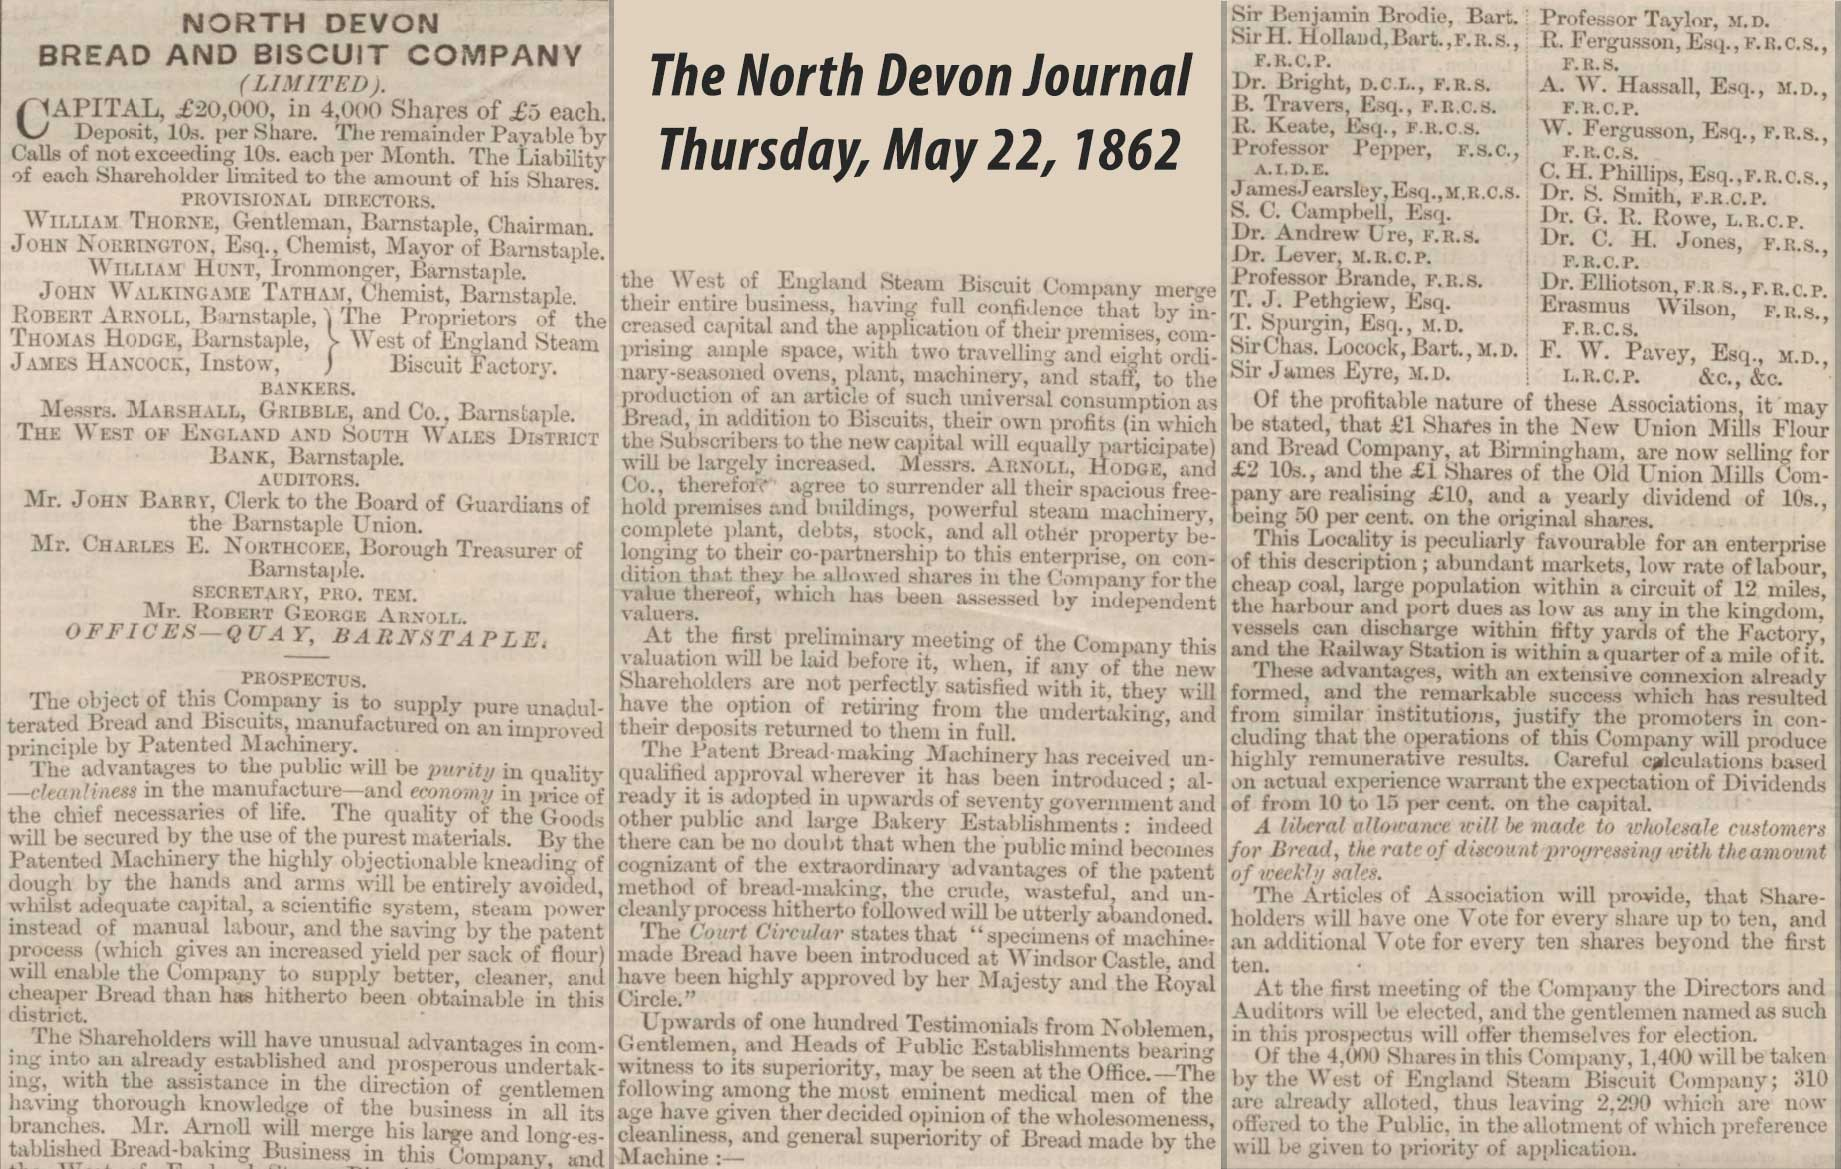 North Devon Bread & Biscuit Company Share Issue - North Devon Journal 1862